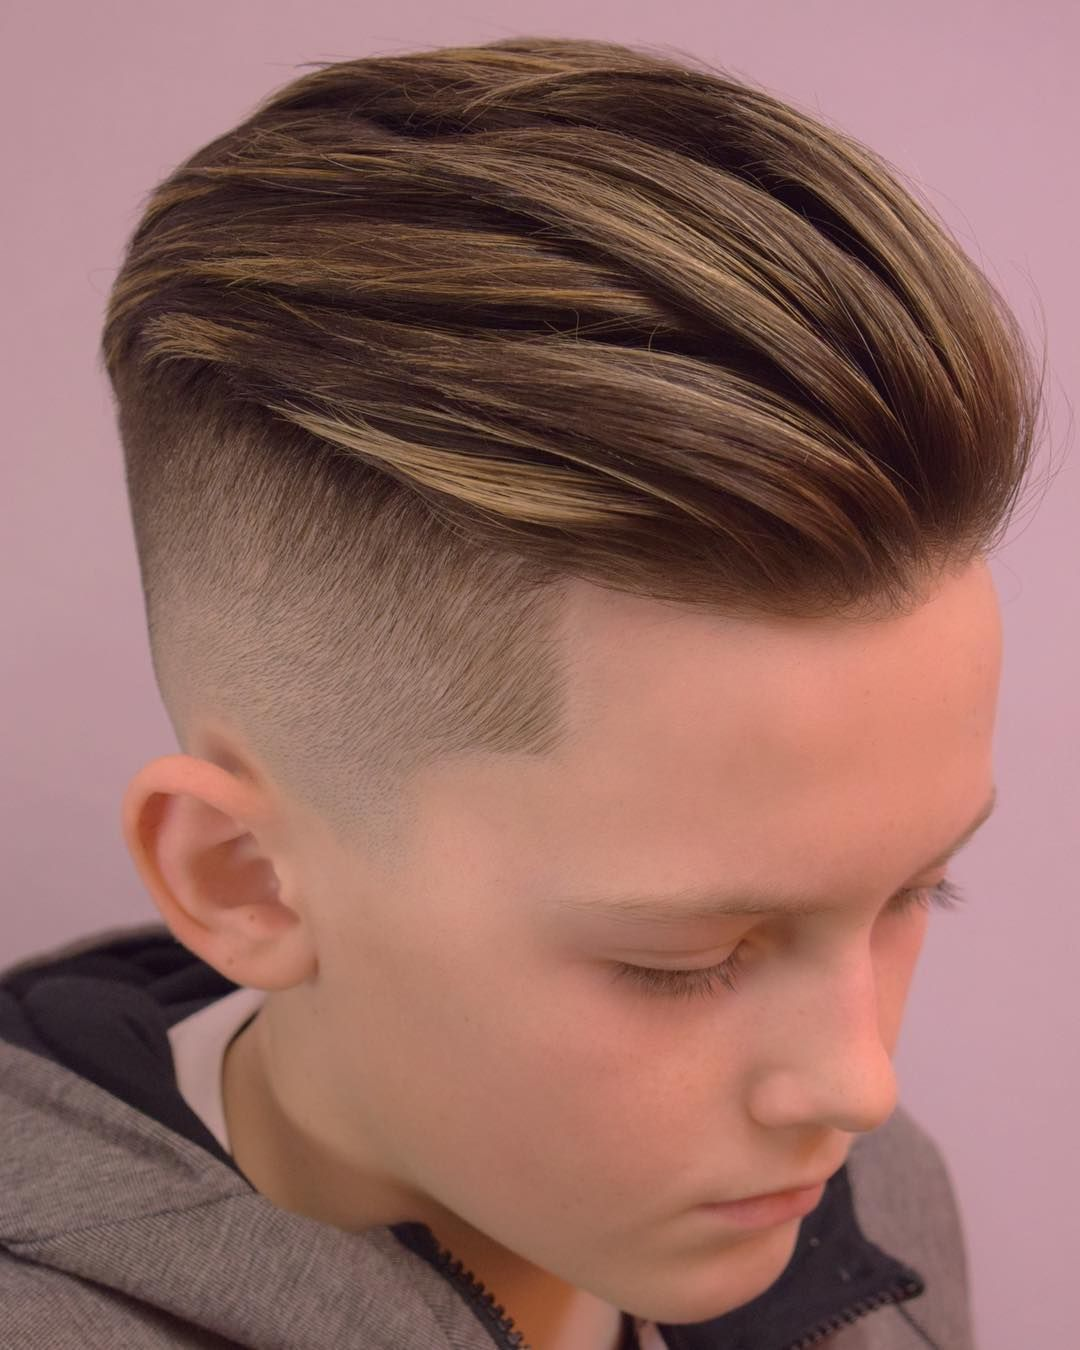 Boys Hair Styles Beauteous Undercuts Hairstyles Boys  Textured Hairstyles & Haircuts